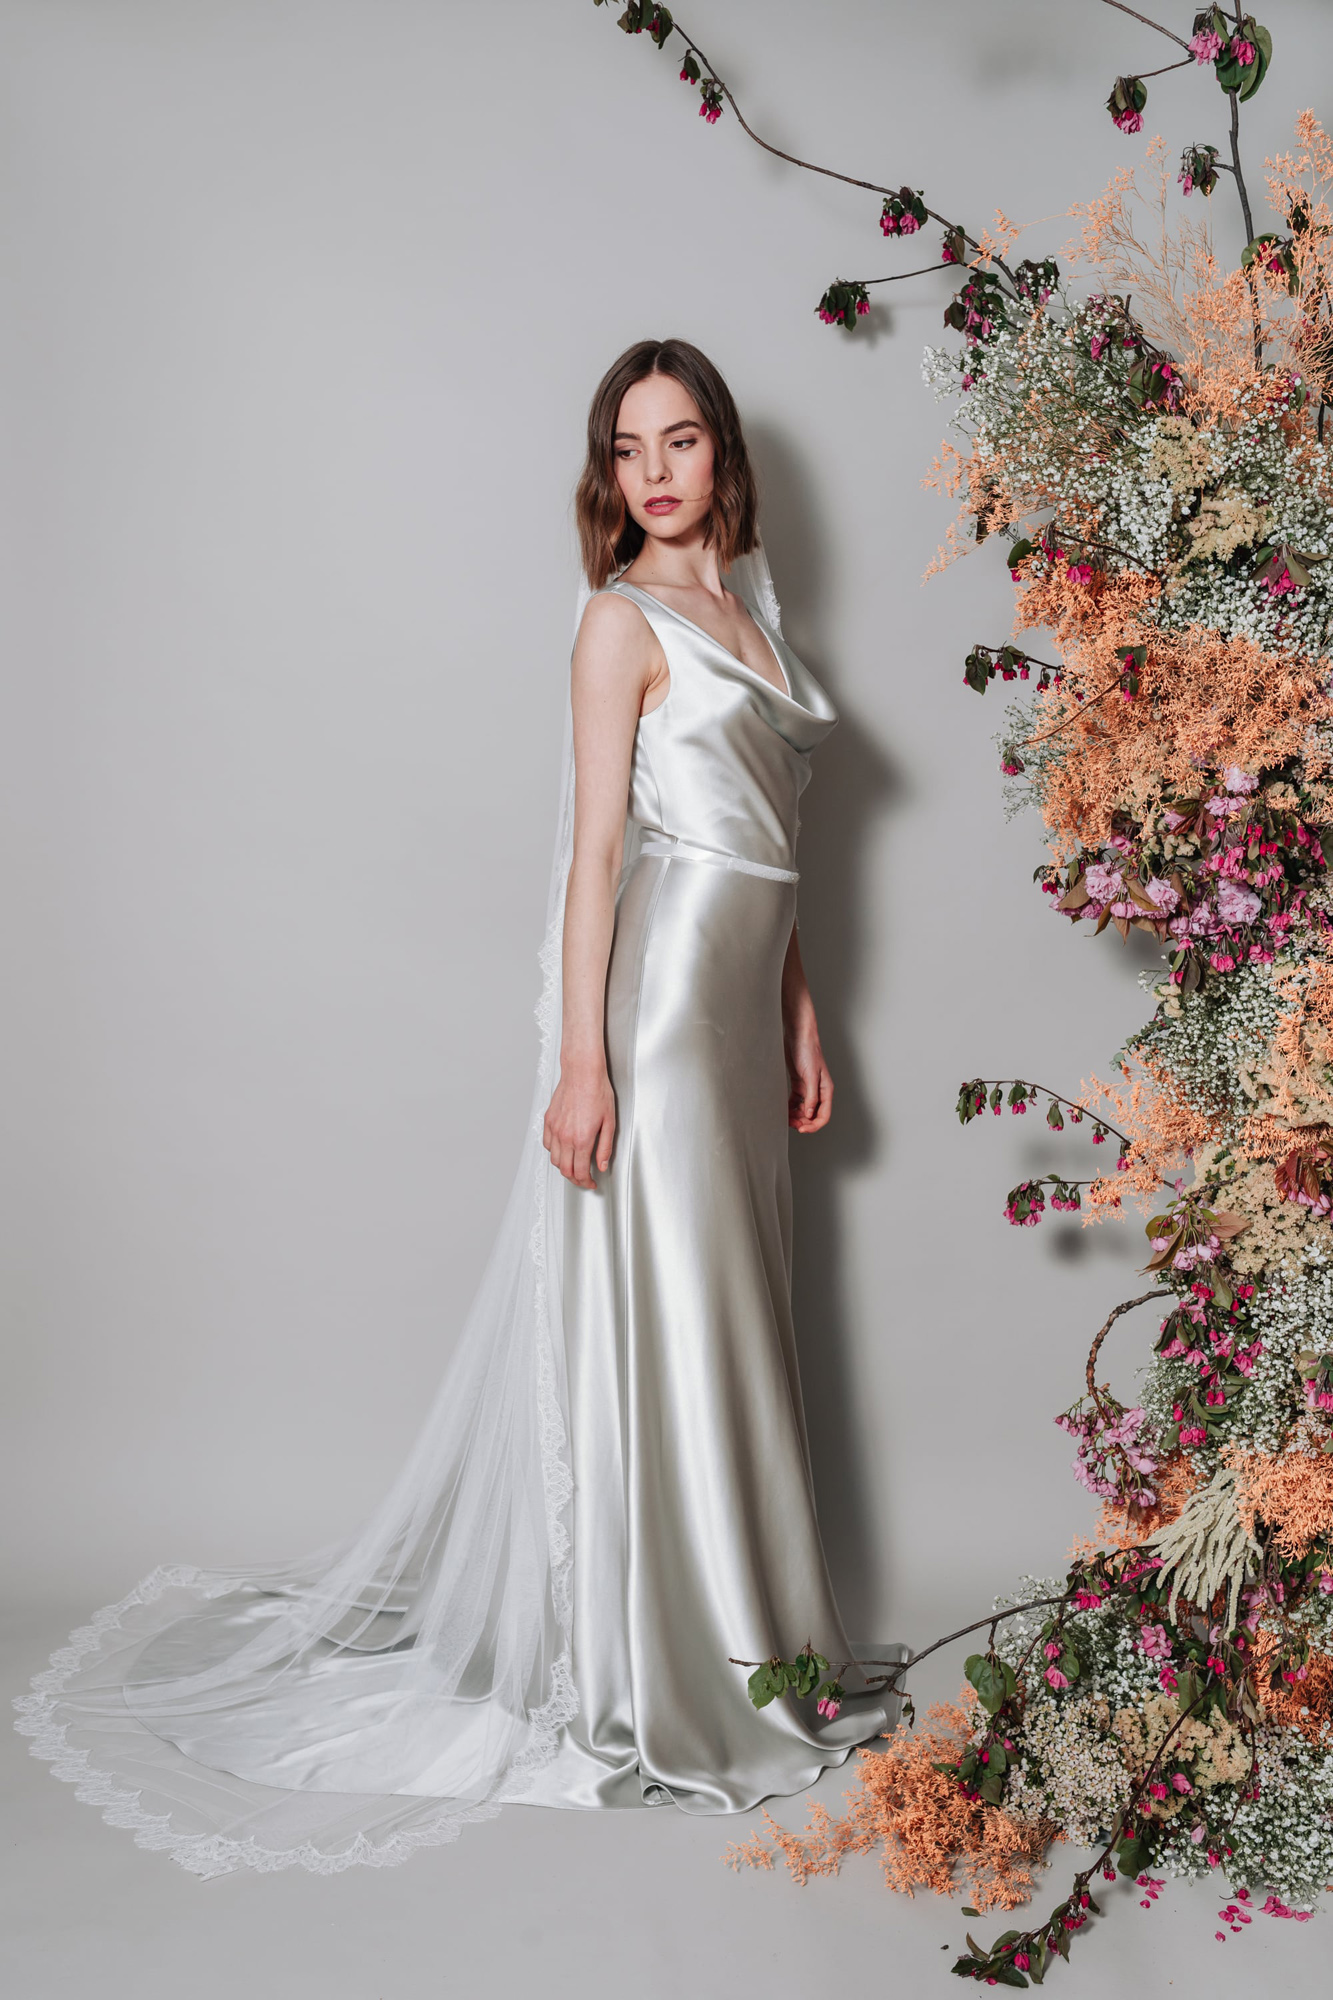 Kate-Beaumont-Sheffield-Sweet-Violet-Cowl-Neck-Bias-Cut-Silk-Wedding-Gown-12.jpg